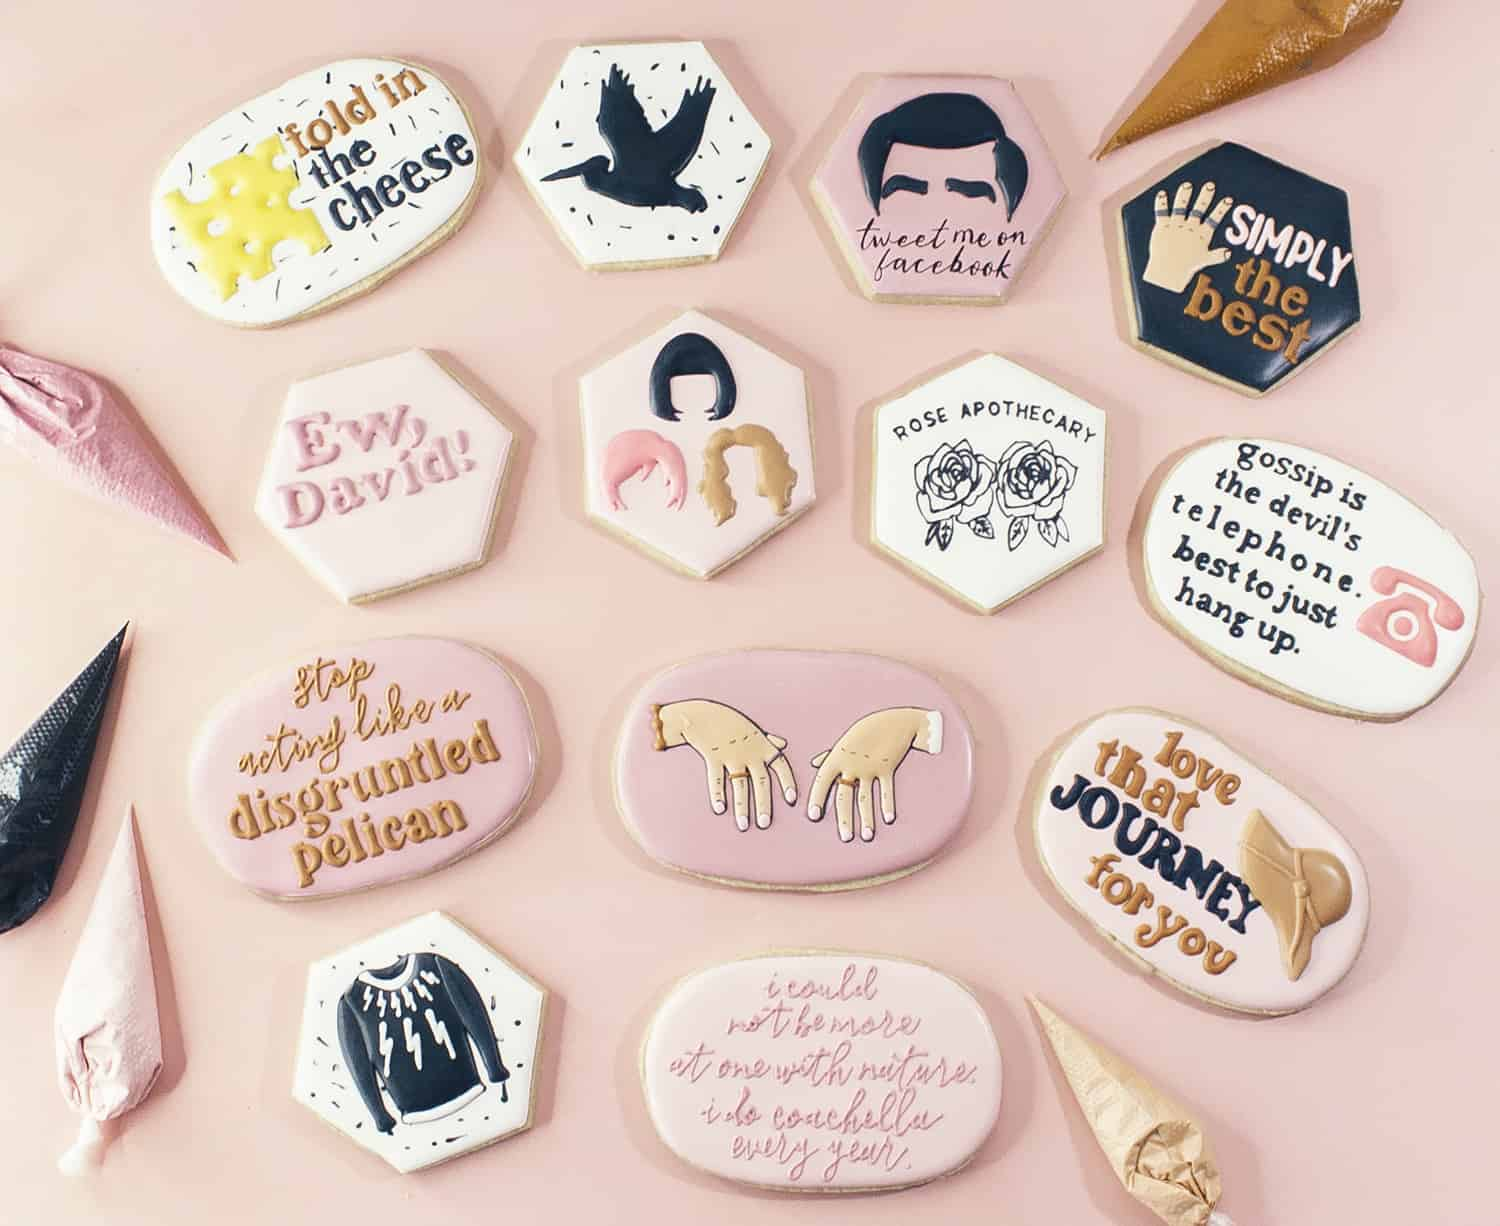 3 Ways to Add Lettering to Sugar Cookies